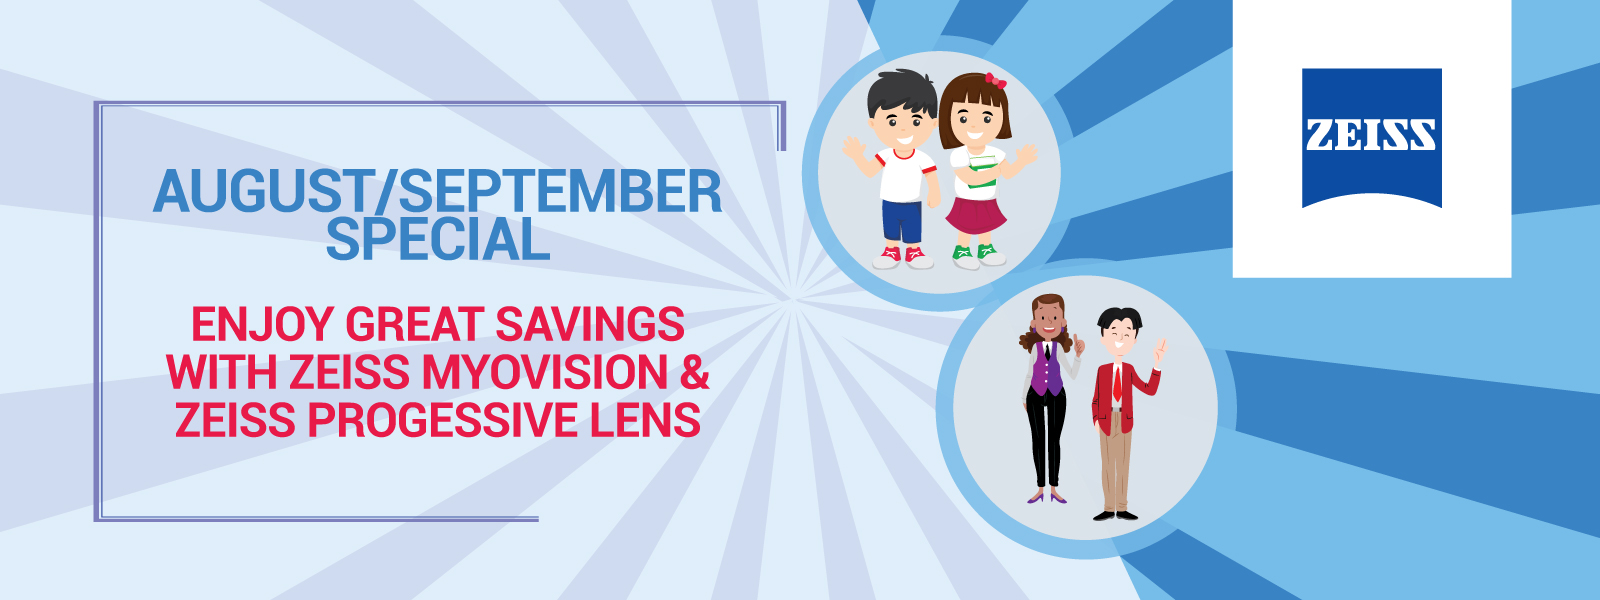 Zeiss Promotion